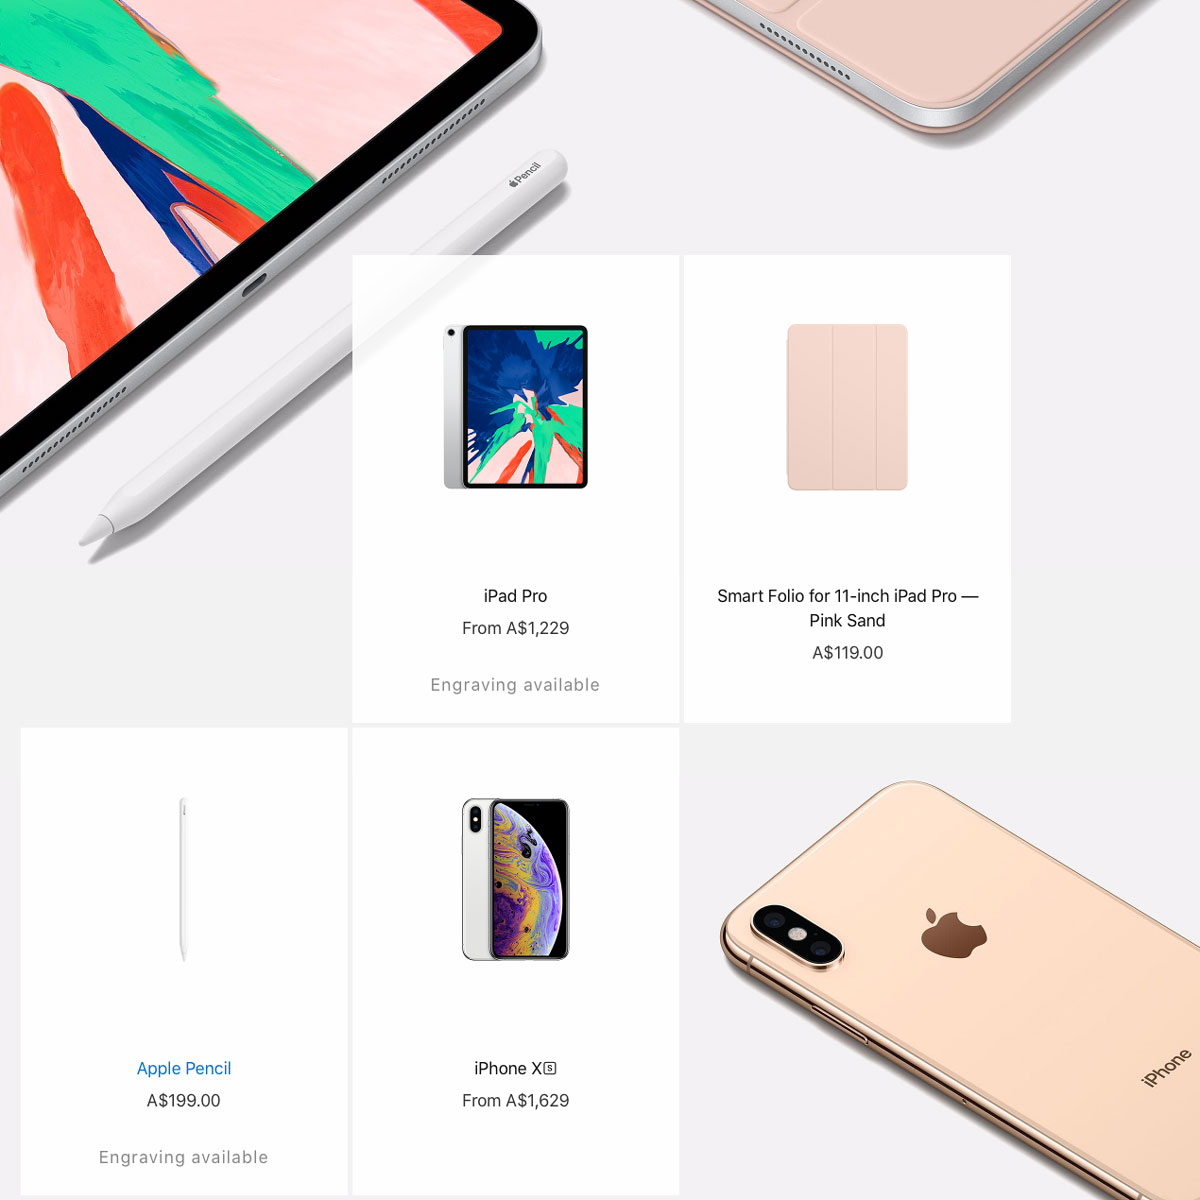 Apple-Gift-Guide-iPad-Pro-iPhone-XS-Apple-Pencil